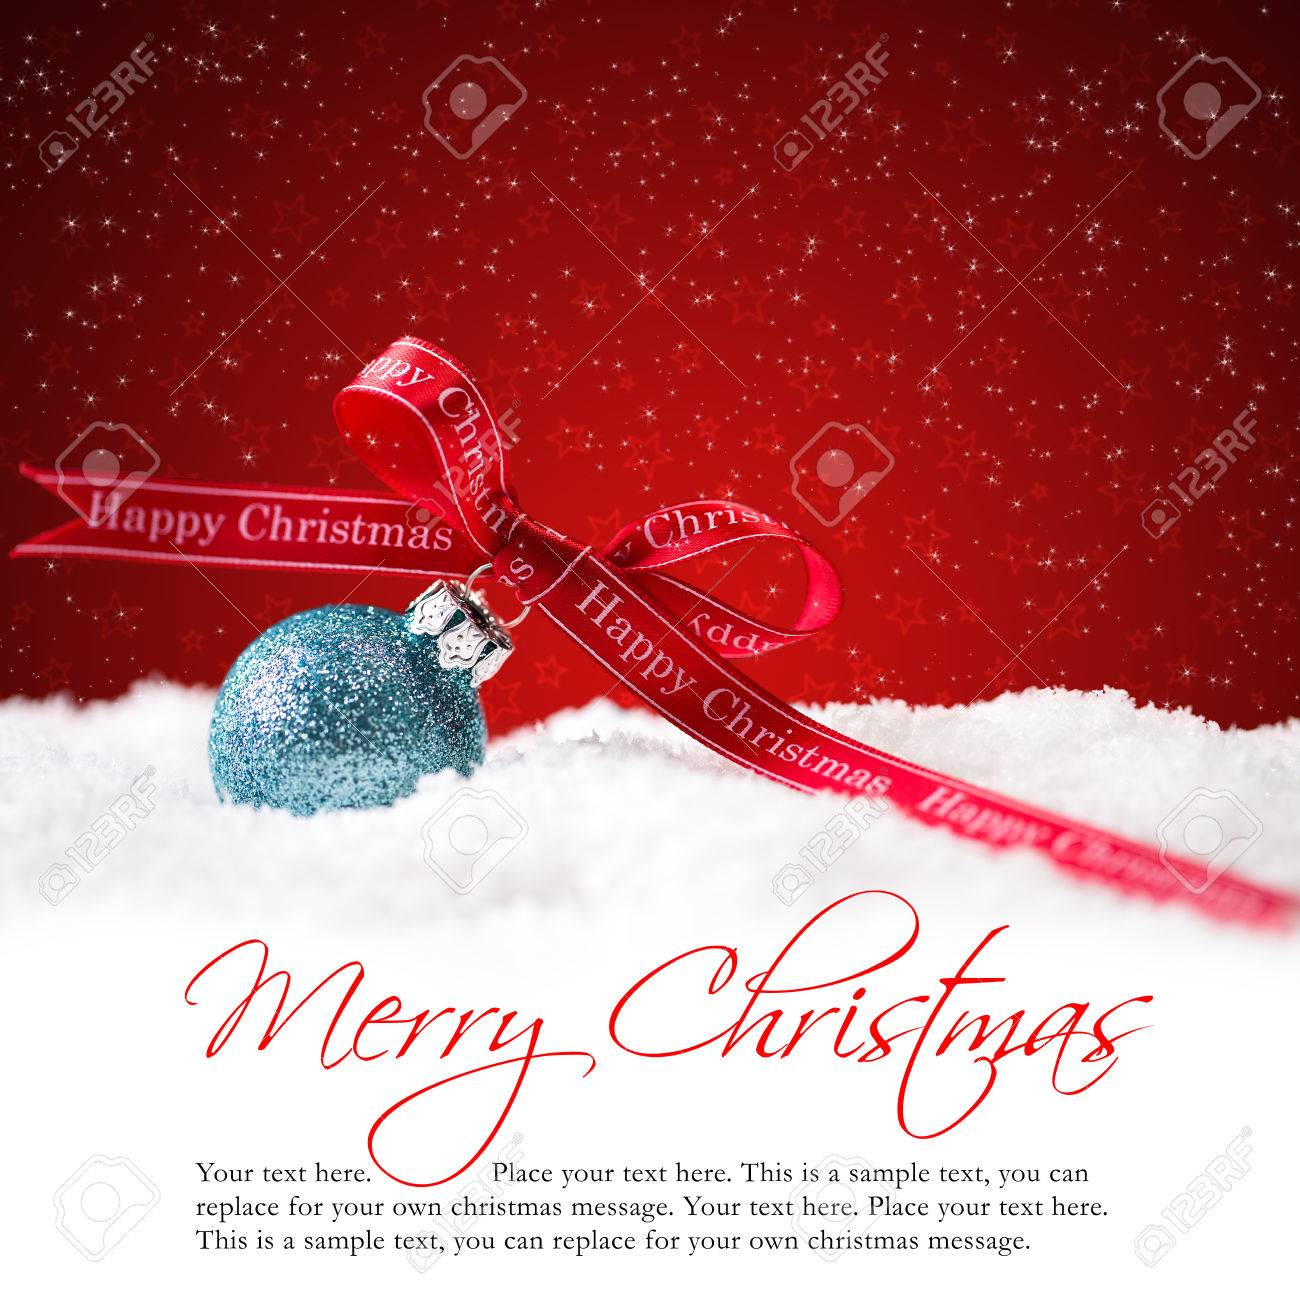 Christmas ball in the snow with merry christmas greeting and stock christmas ball in the snow with merry christmas greeting and sample text stock photo 43624865 m4hsunfo